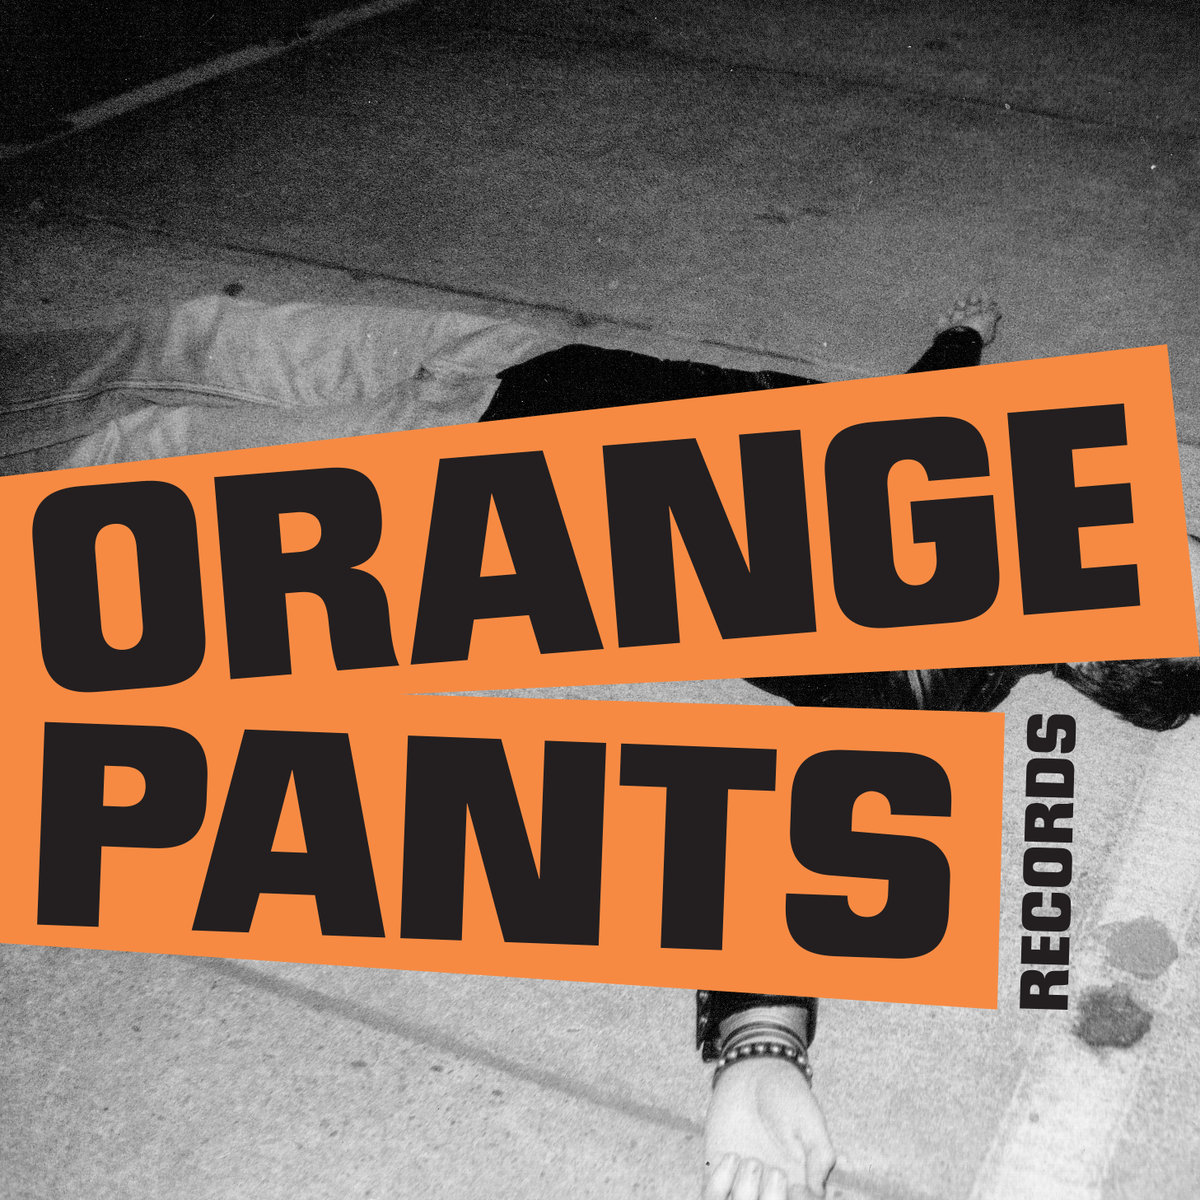 OrangePants Records